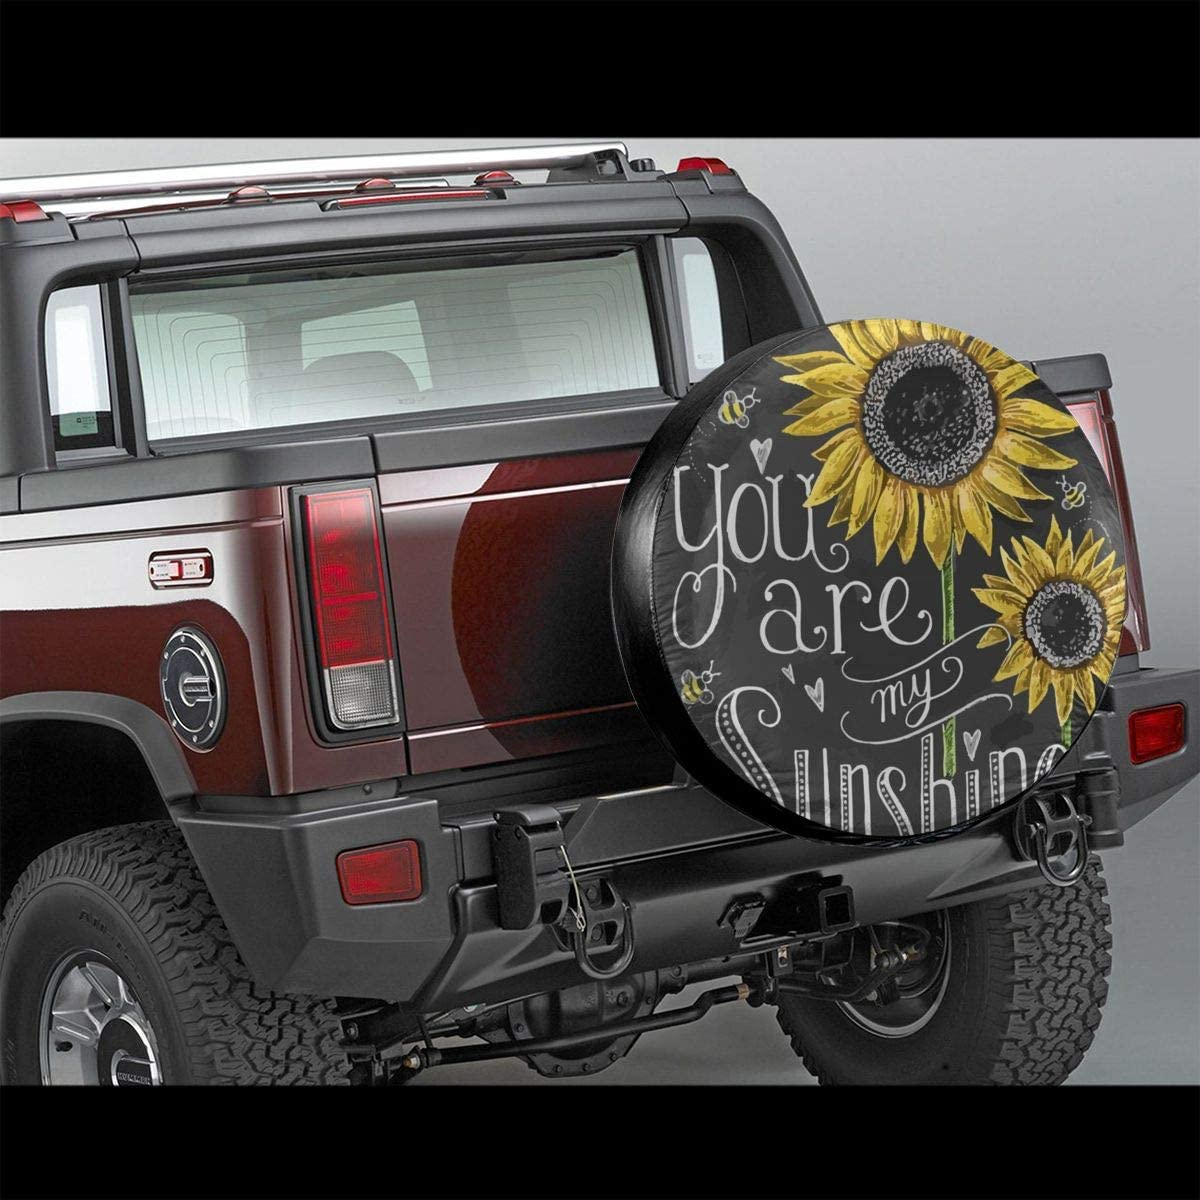 Spare Tire Cover For Trailer SUV Camper Travel Trailer Accessories You Are My Sunshine Sunflower Water Proof Sunscreen Universal Spare Wheel Tire Cover Fit 14 15 16 17 DIY Tire Protective Cover